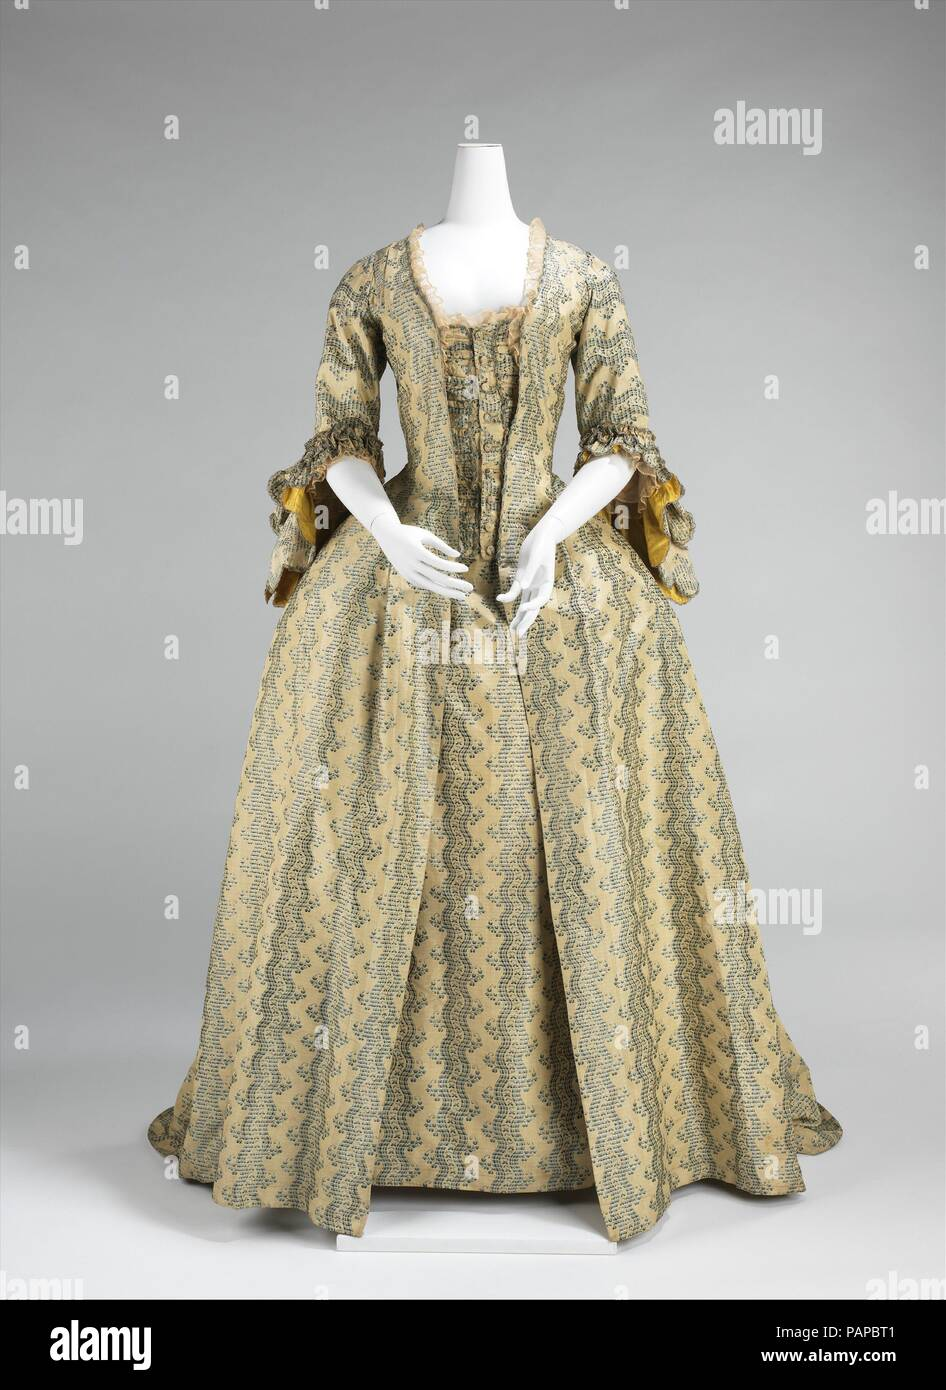 Decoration Francaise Robe à La Française Culture French Date 1760 70 Women With